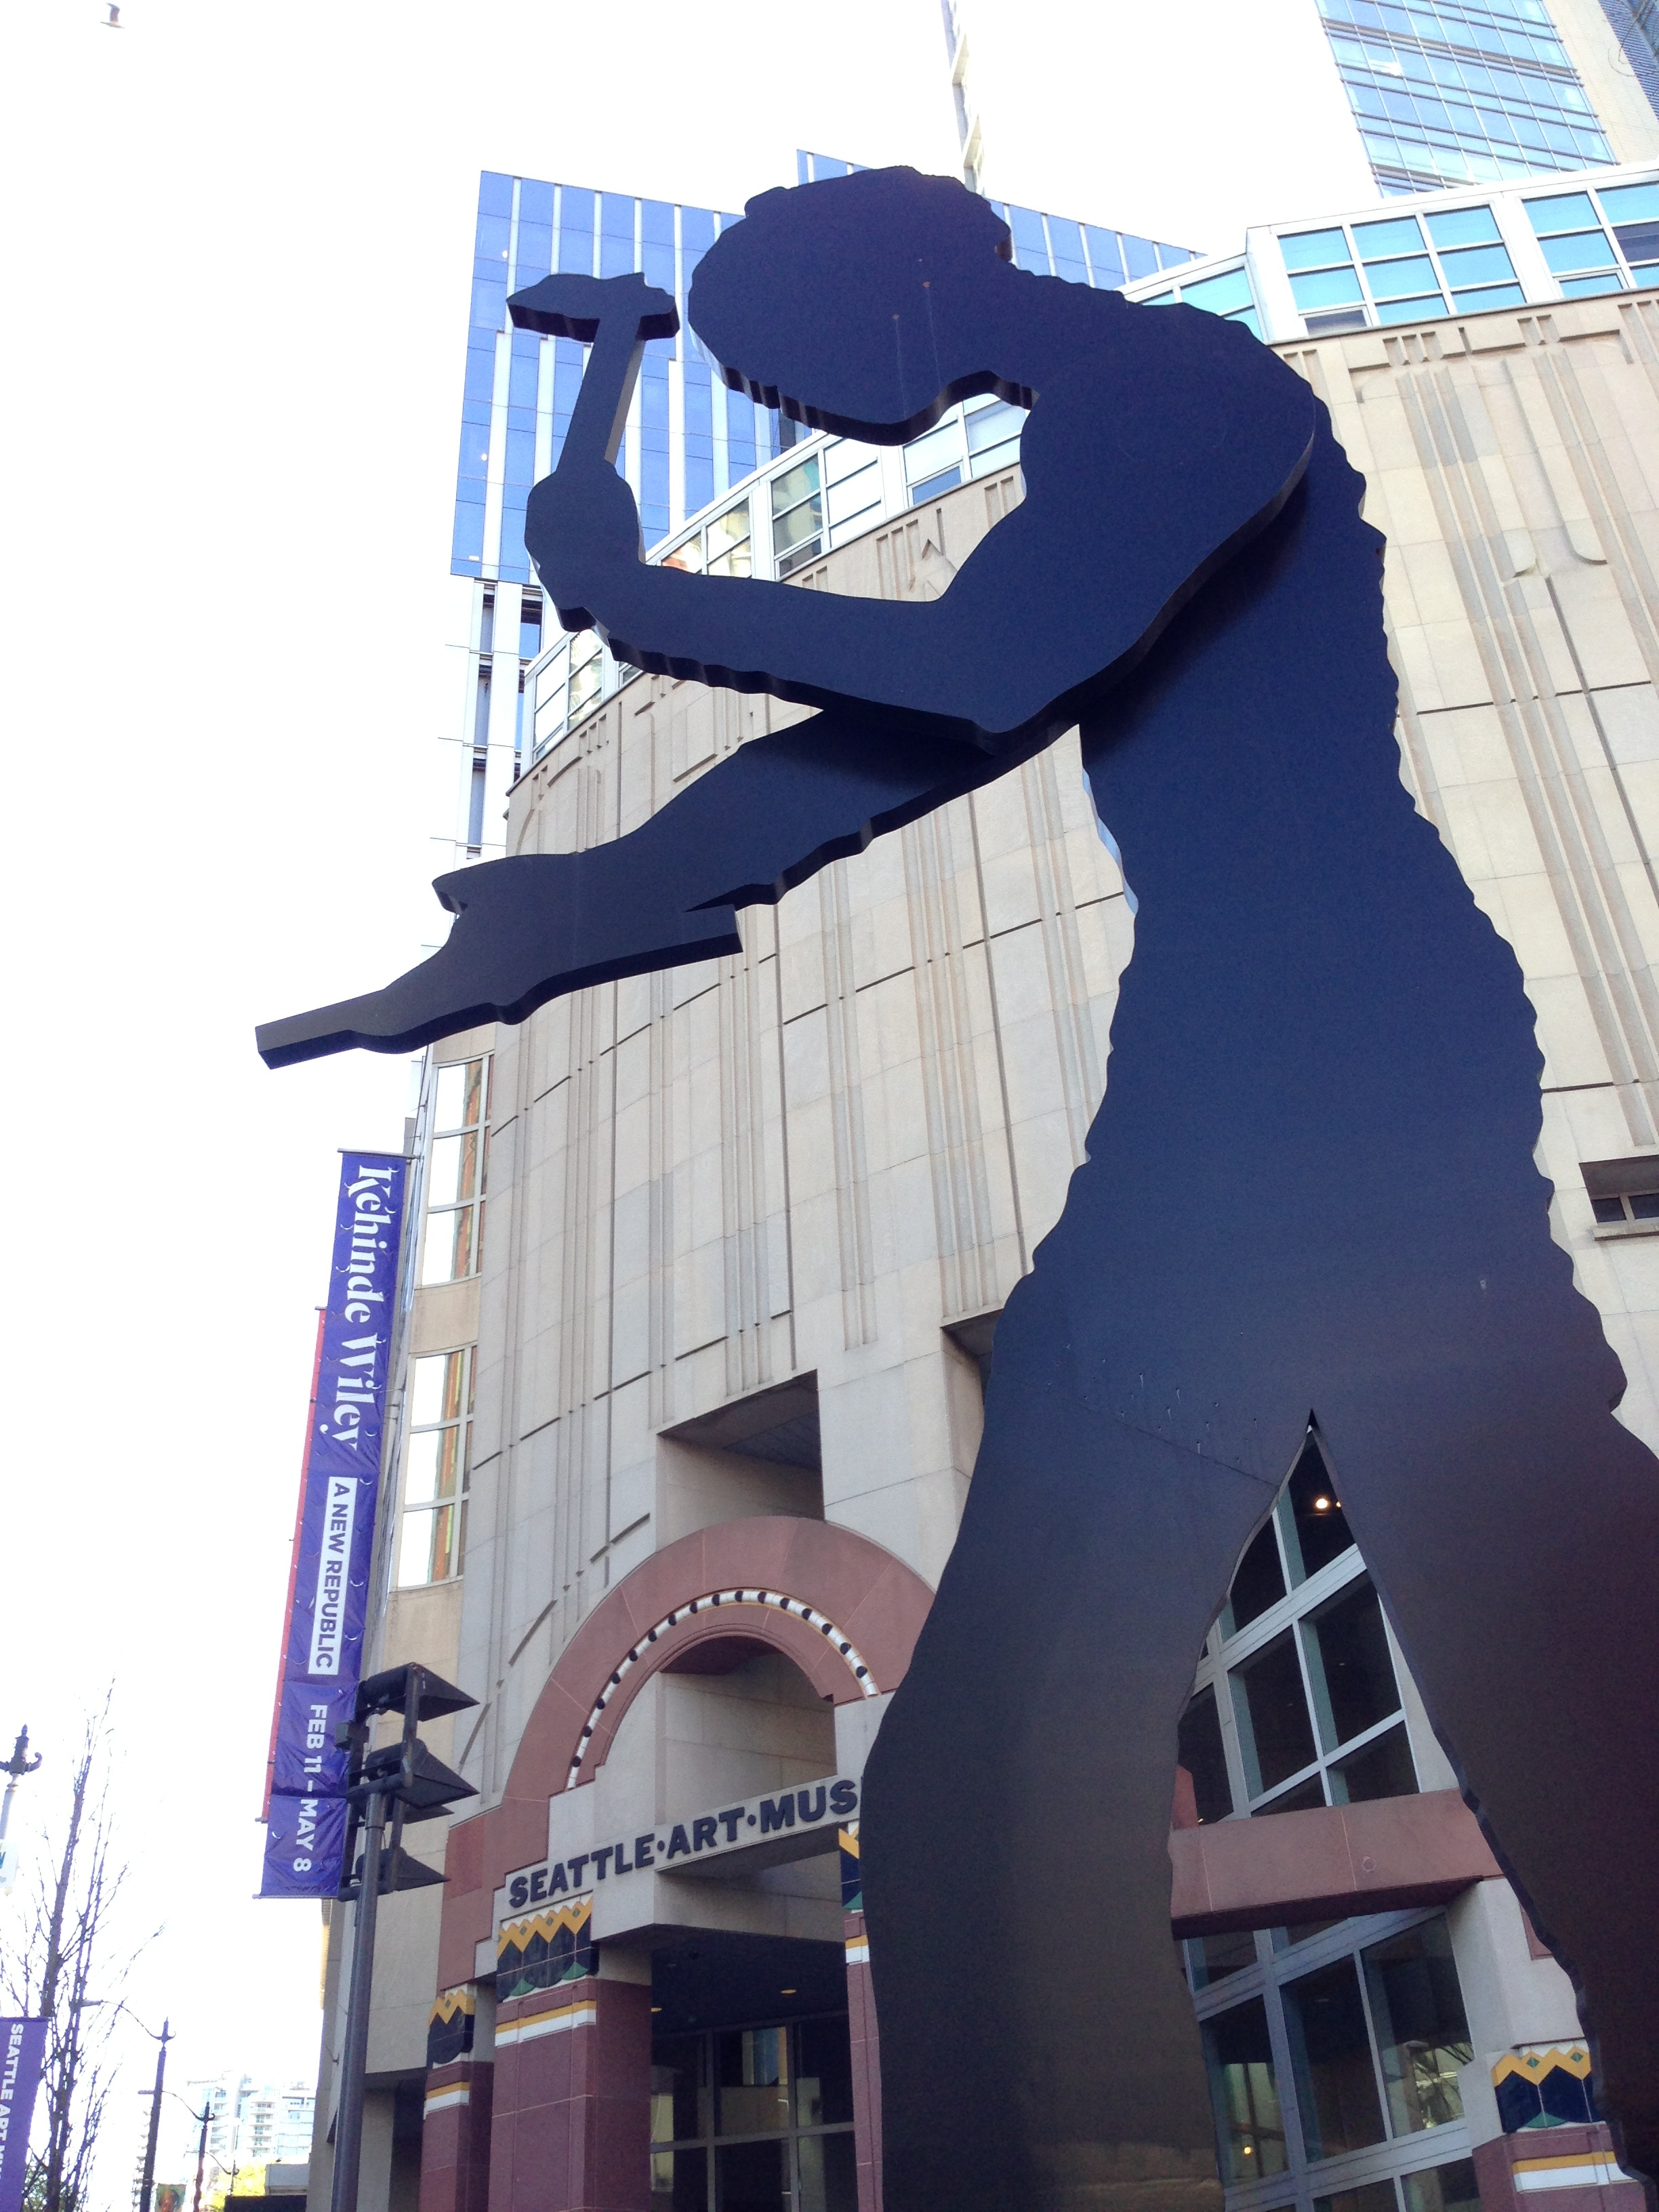 The Seattle Art Museum on First features a large dynamic sculpture of the Hammering Man by Jonathan Borofsky in front. (photo by Kathy)